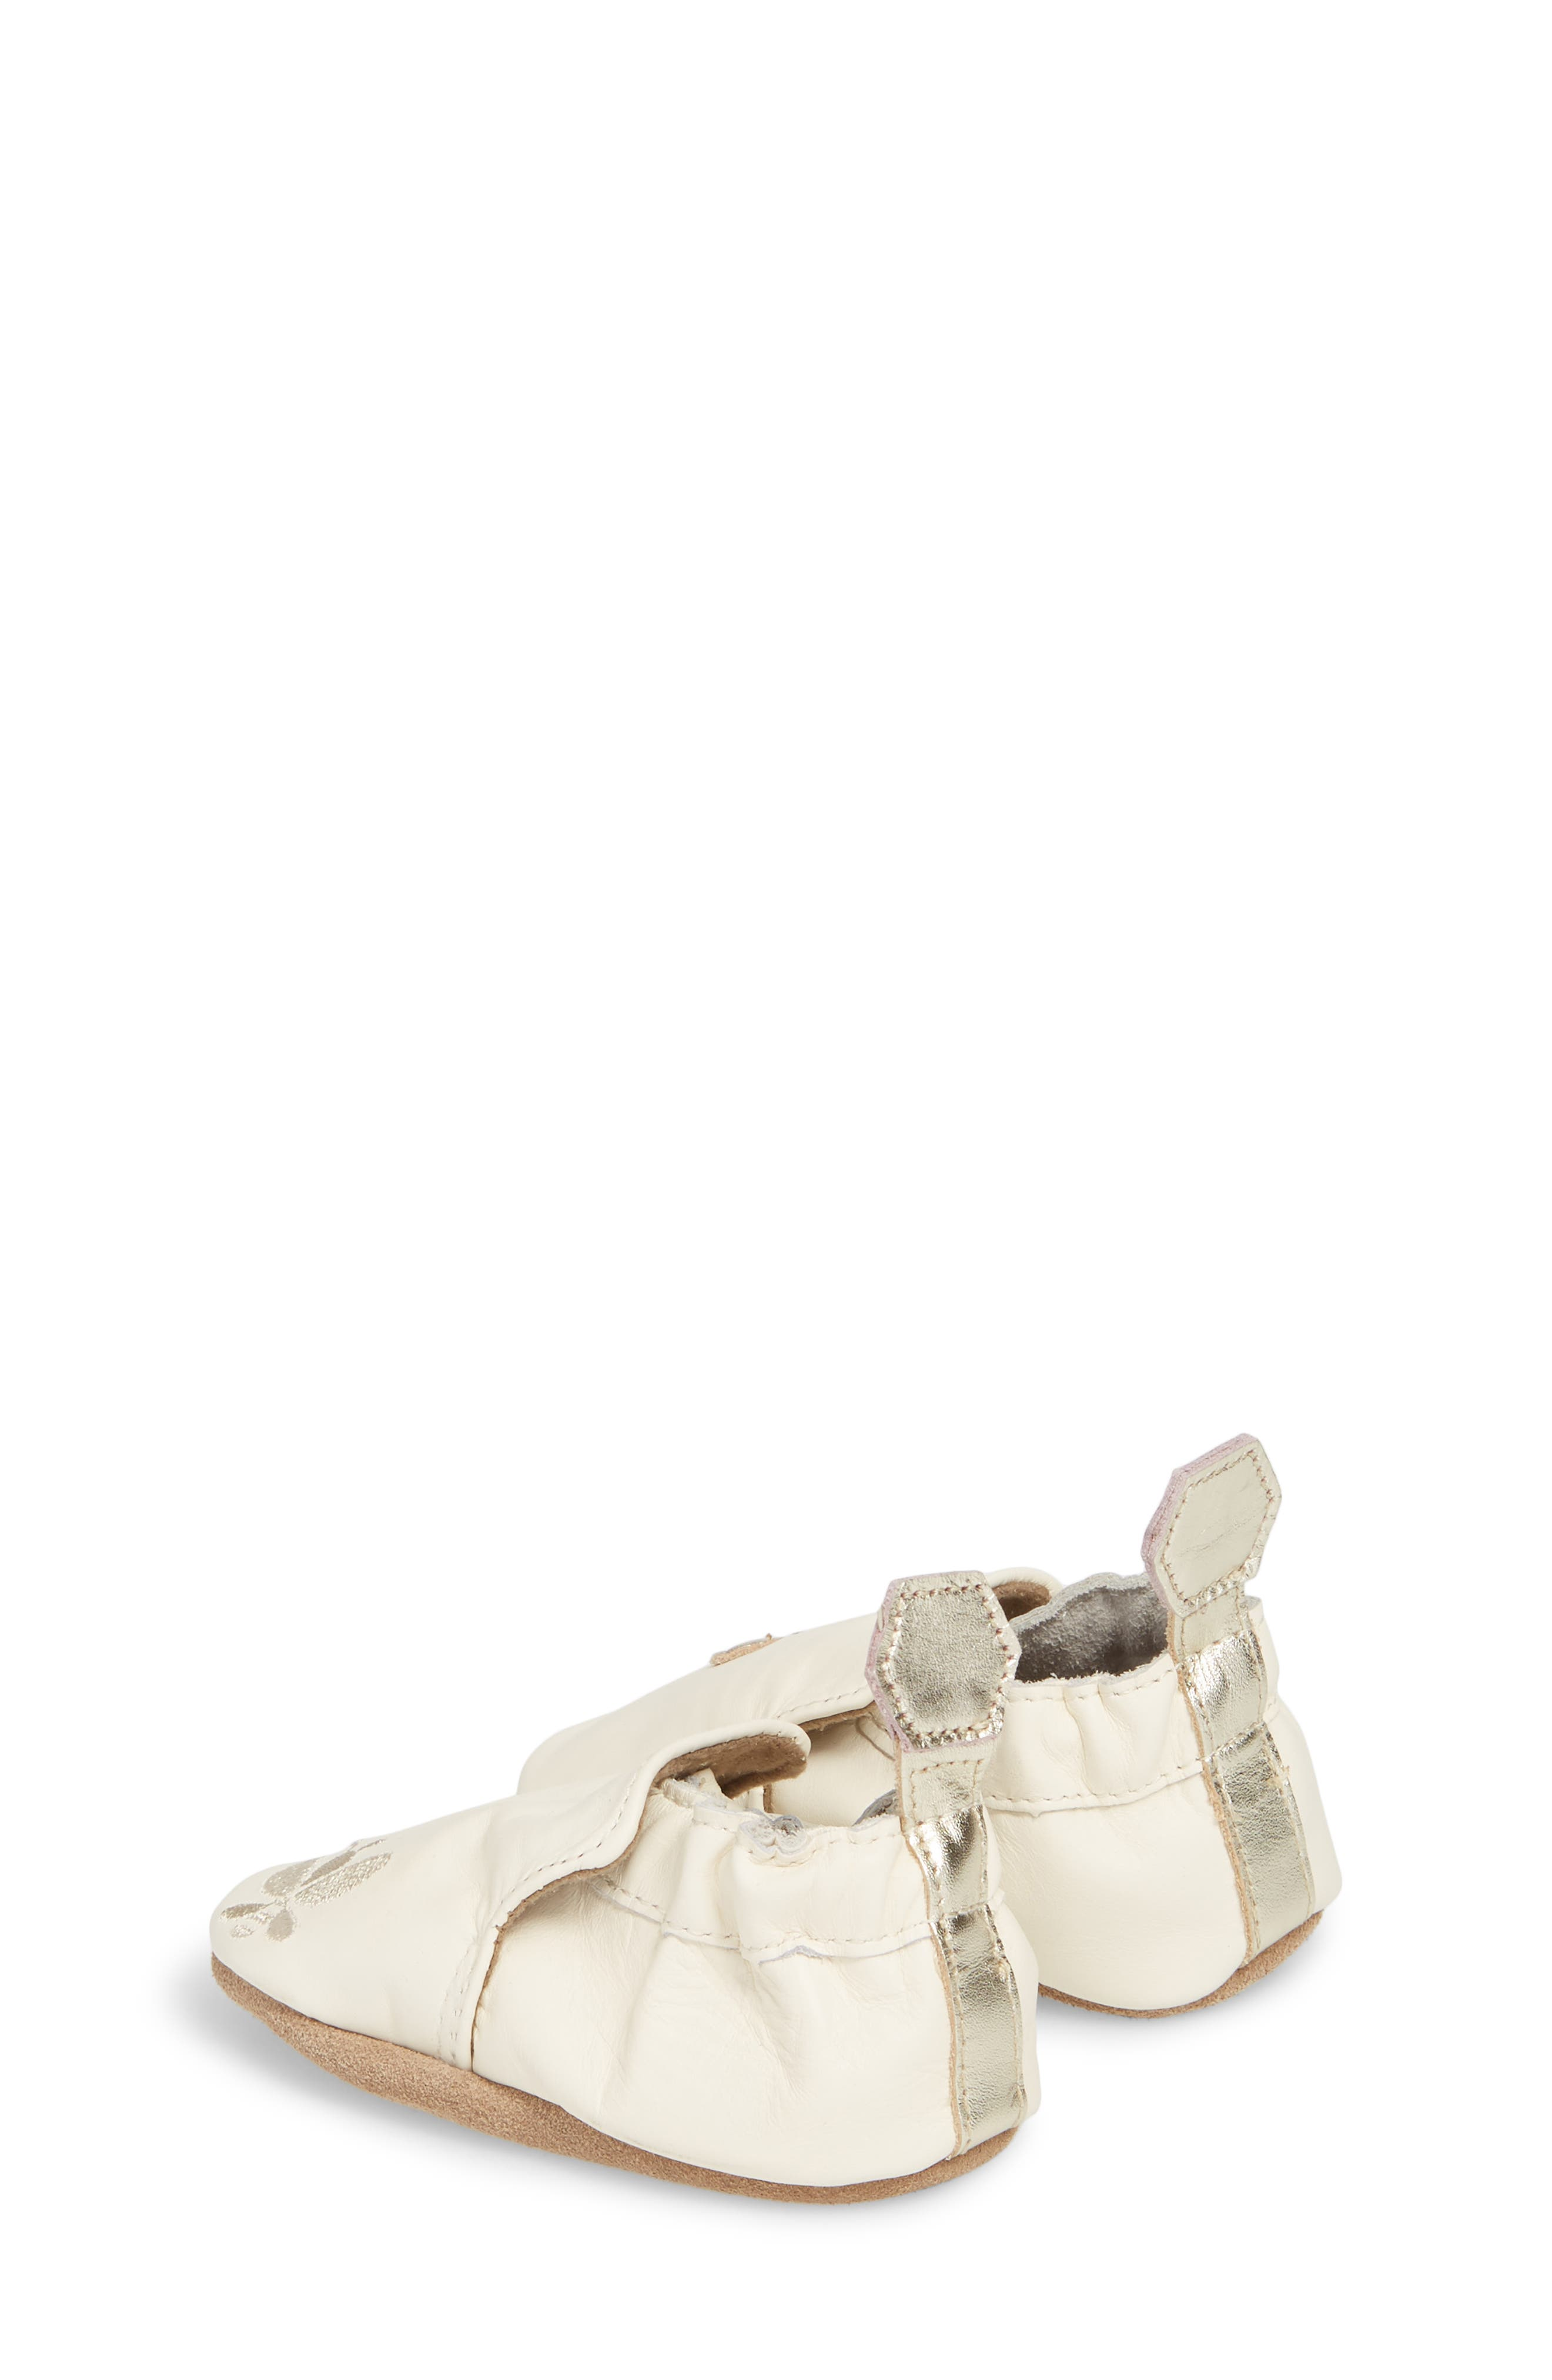 ROBEEZ<SUP>®</SUP>, Bee Moccasin Sneaker, Alternate thumbnail 2, color, CREAM